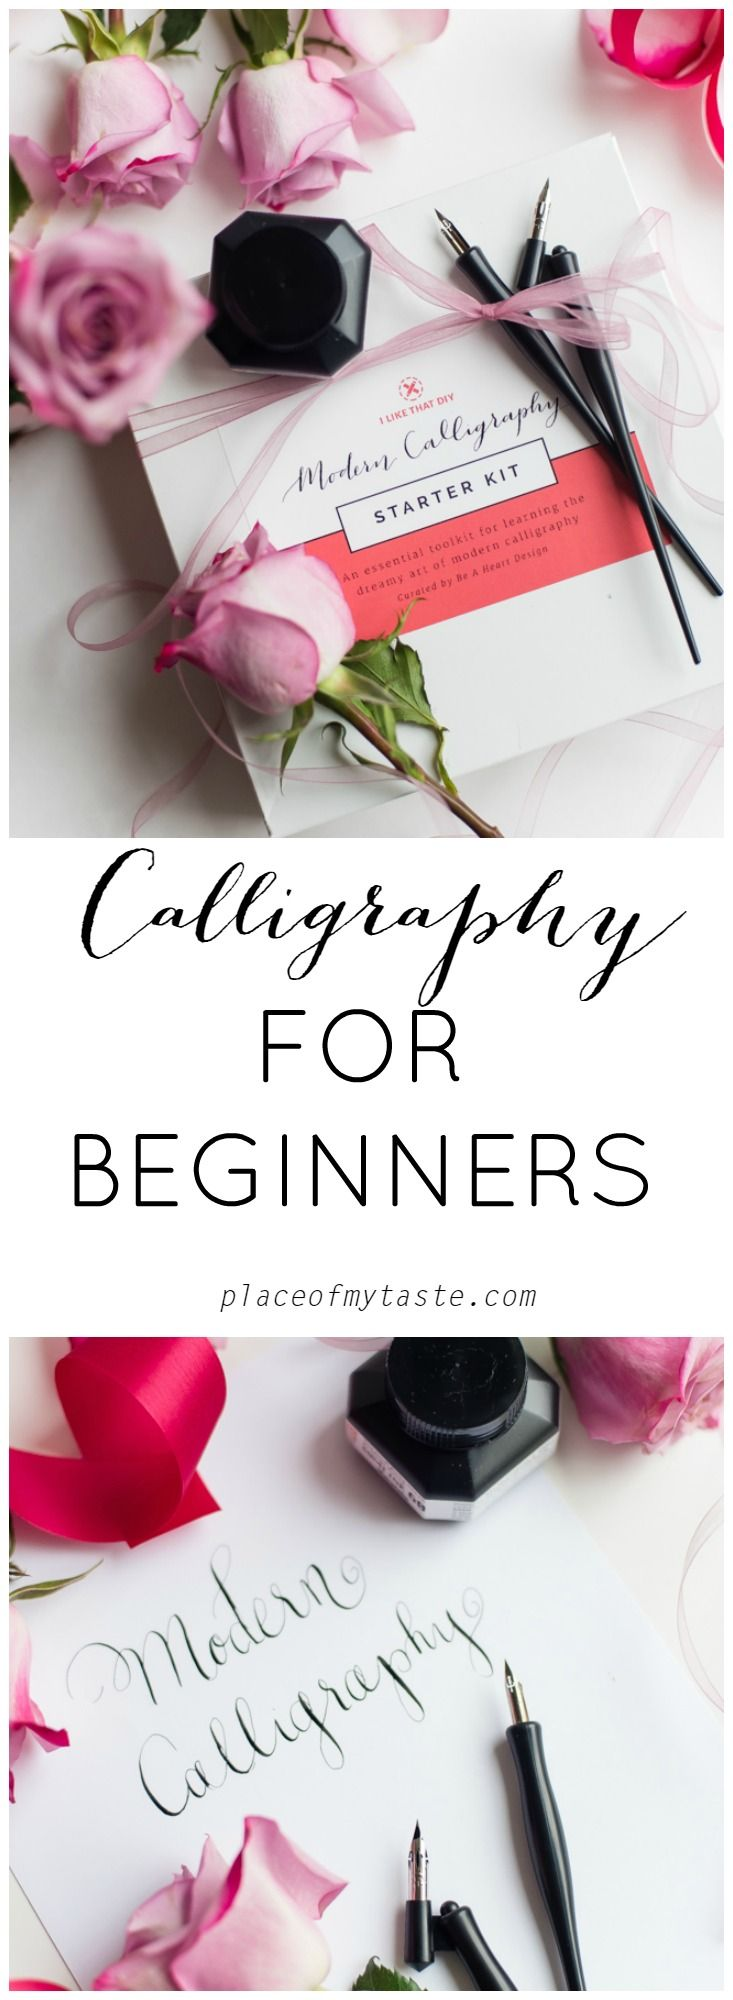 Have you ever wanted to start calligraphy? This amazing kit is perfect for beginners!